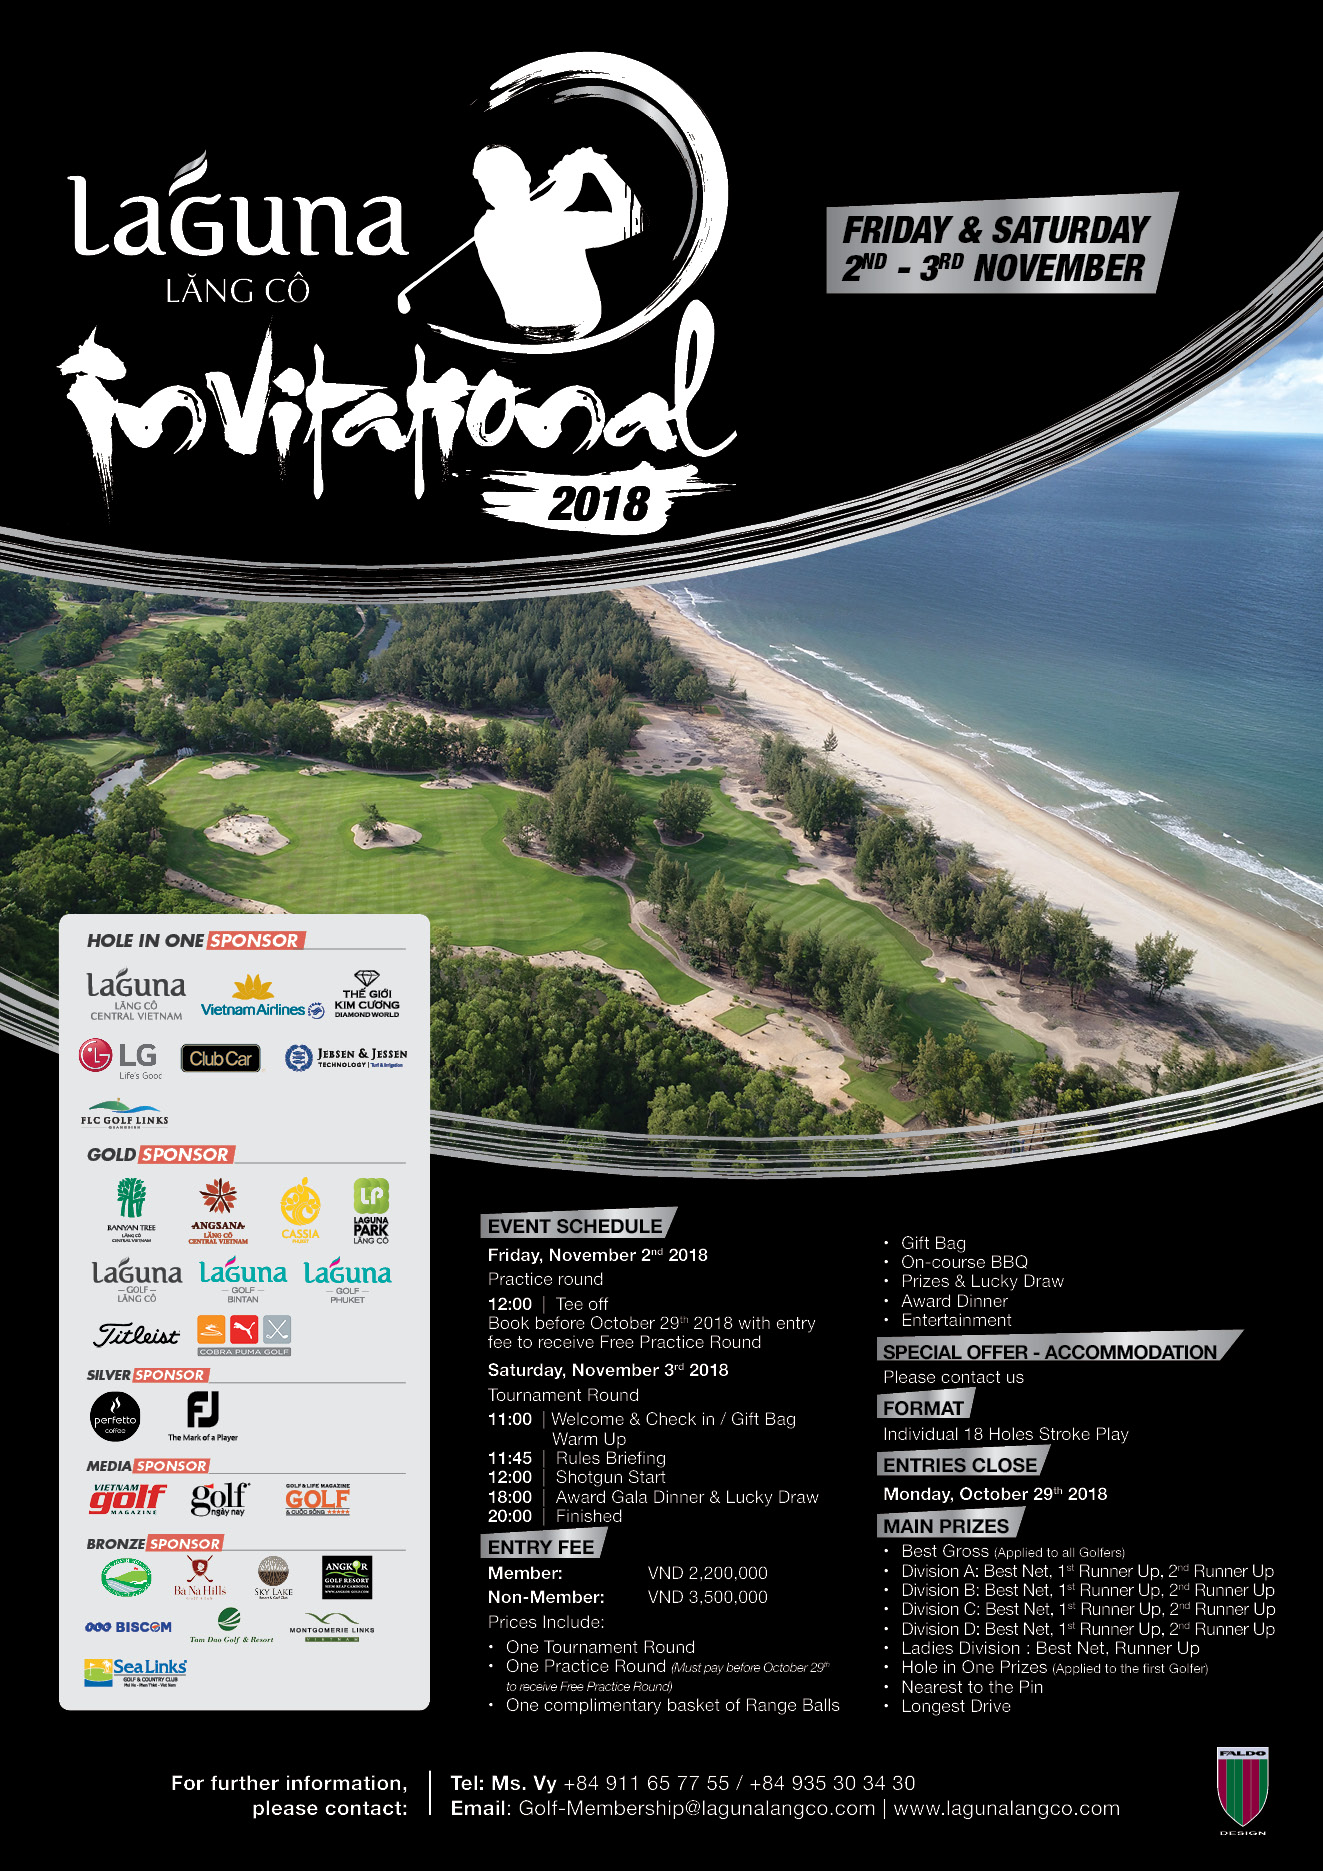 Laguna Lang Co Invitational 2018 tournament poster